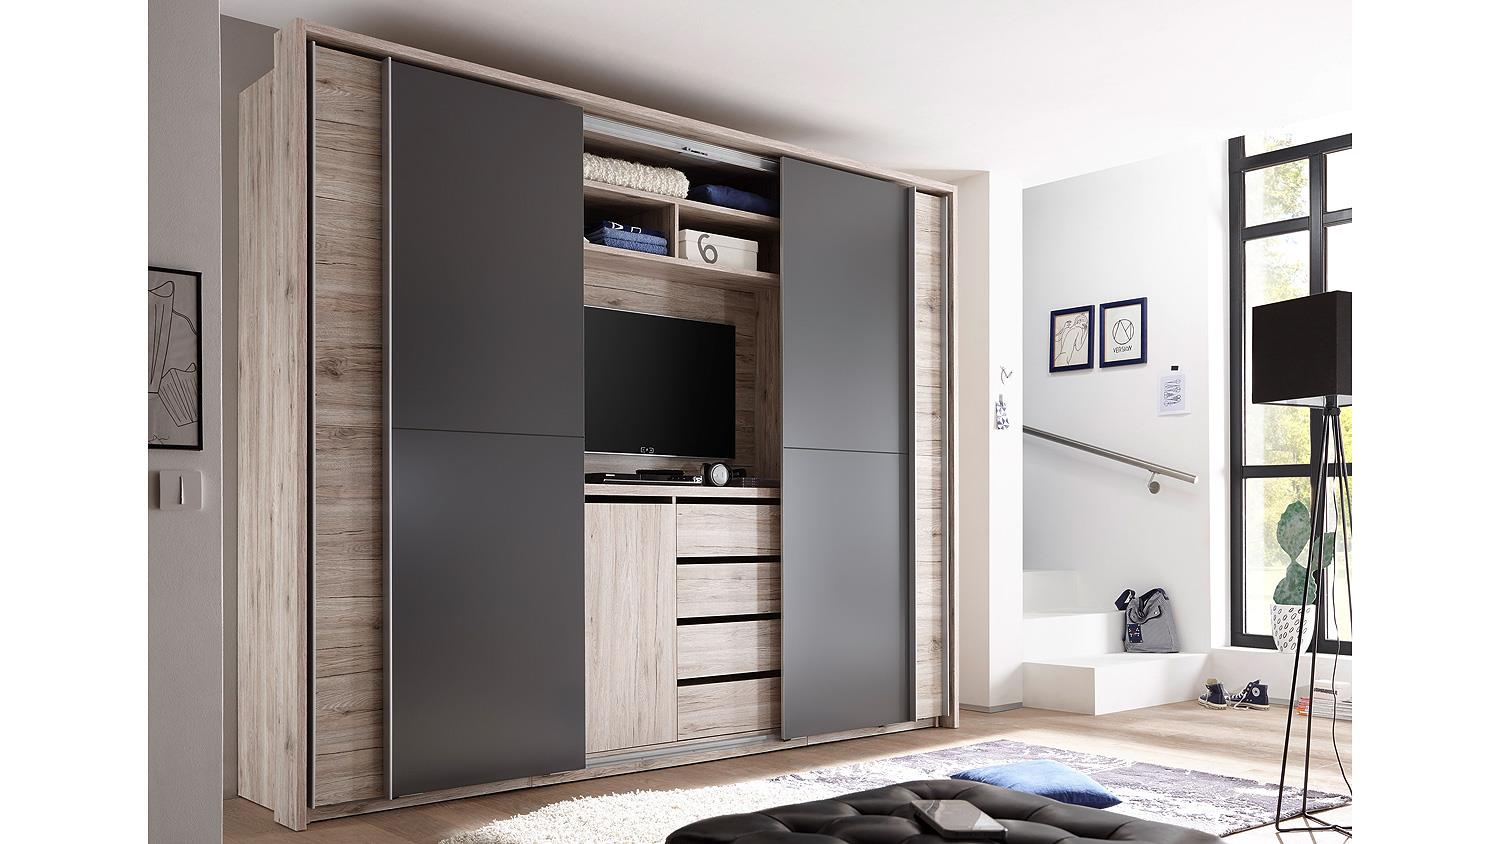 schwebet renschrank sandeiche interessante. Black Bedroom Furniture Sets. Home Design Ideas